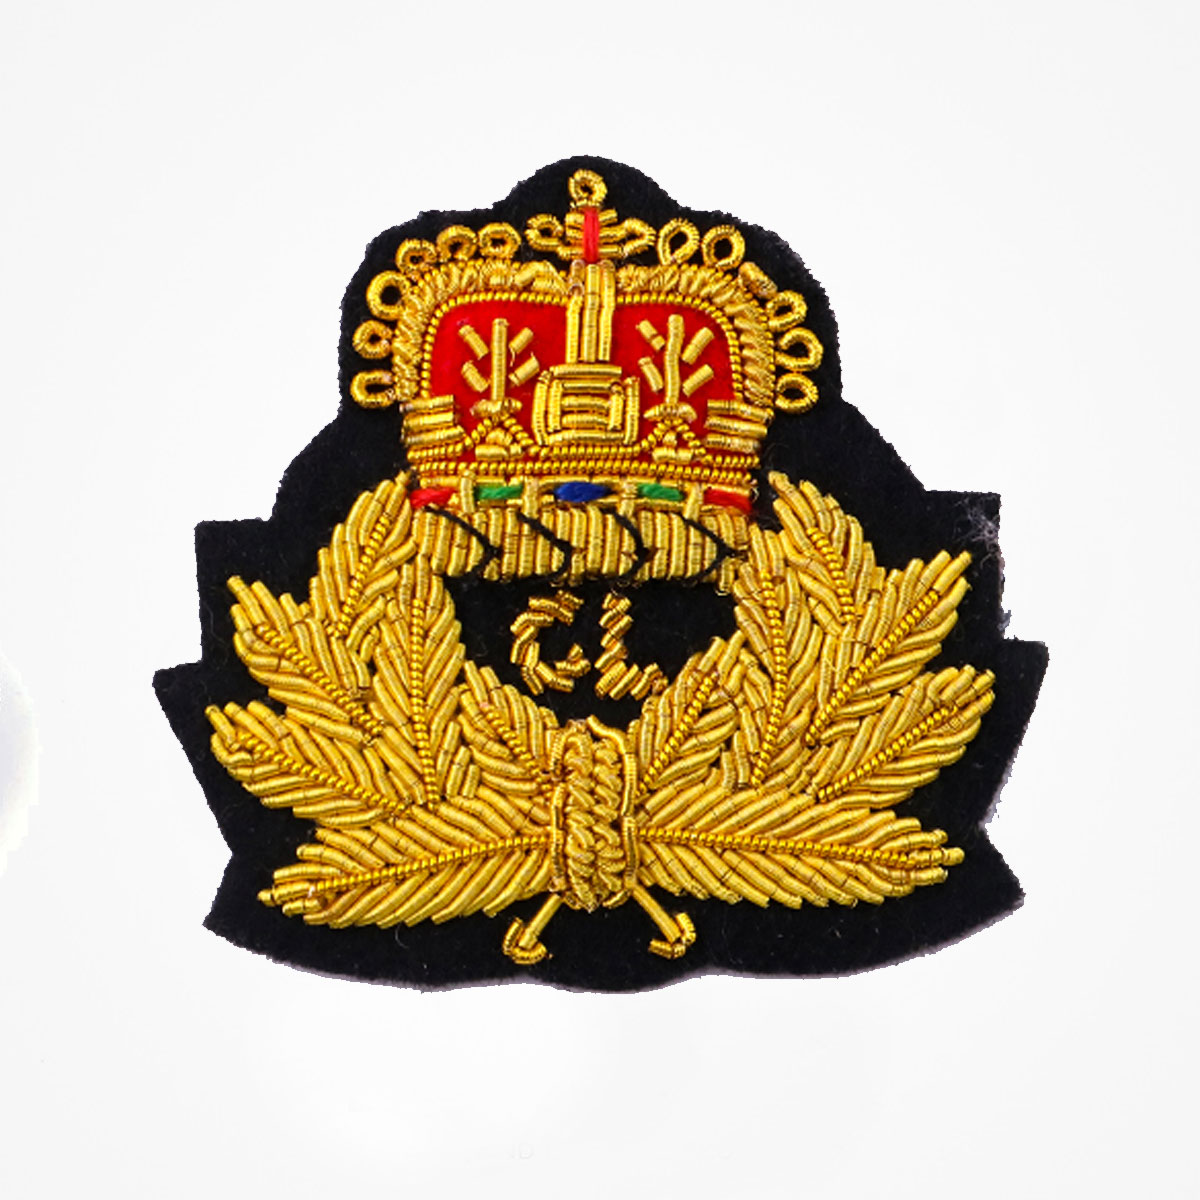 CL Gold Bullion Wire Embroidered Small Sew-on Applique Patch Badges - Fashionable 3D embroidered look Made by skilled artisans Bullion wire and silk thread hand Stitched on Black color Felt Available in gold and silver colors Size = 2 inches sew-on backing: Perfect for caps, sports jacket, leather jackets, blazer coat, Blazer Pocket, shirts uniforms, Accessories and many More Pin backing: easy to removable 4